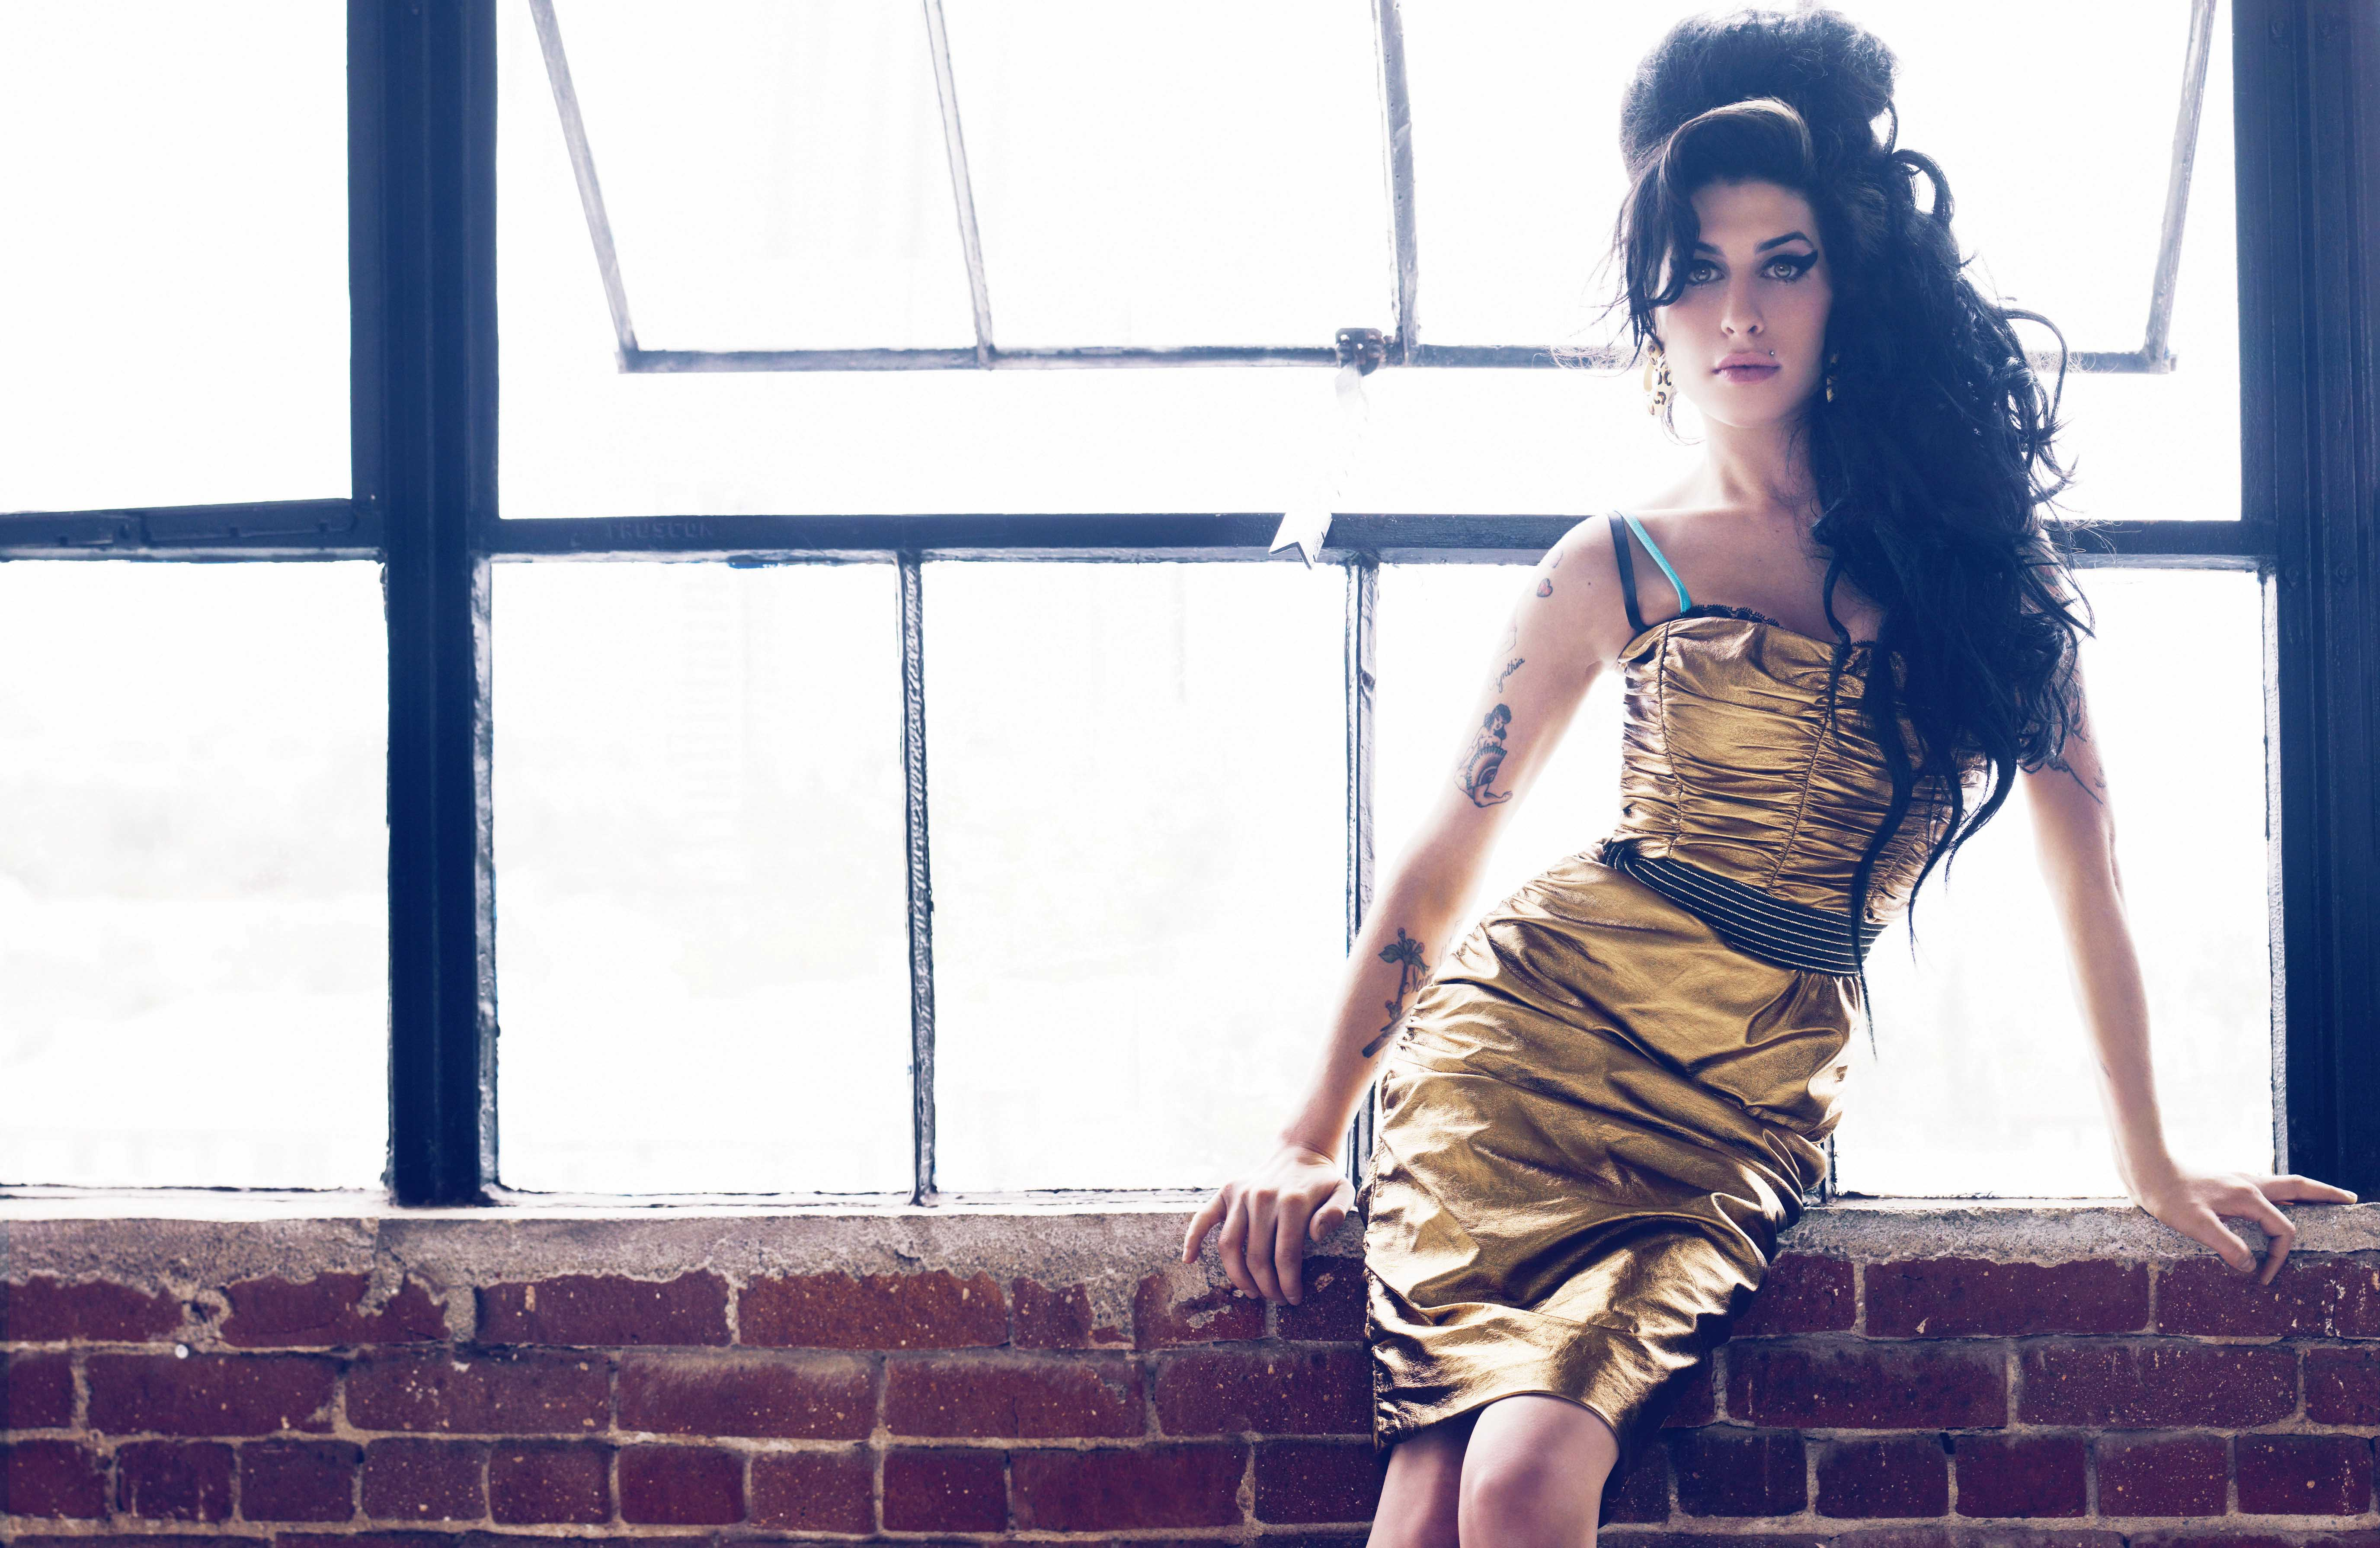 AMY WINEHOUSE PASSES AWAY AT 27 | CINEMATIC PASSIONS BY ... Amy Winehouse